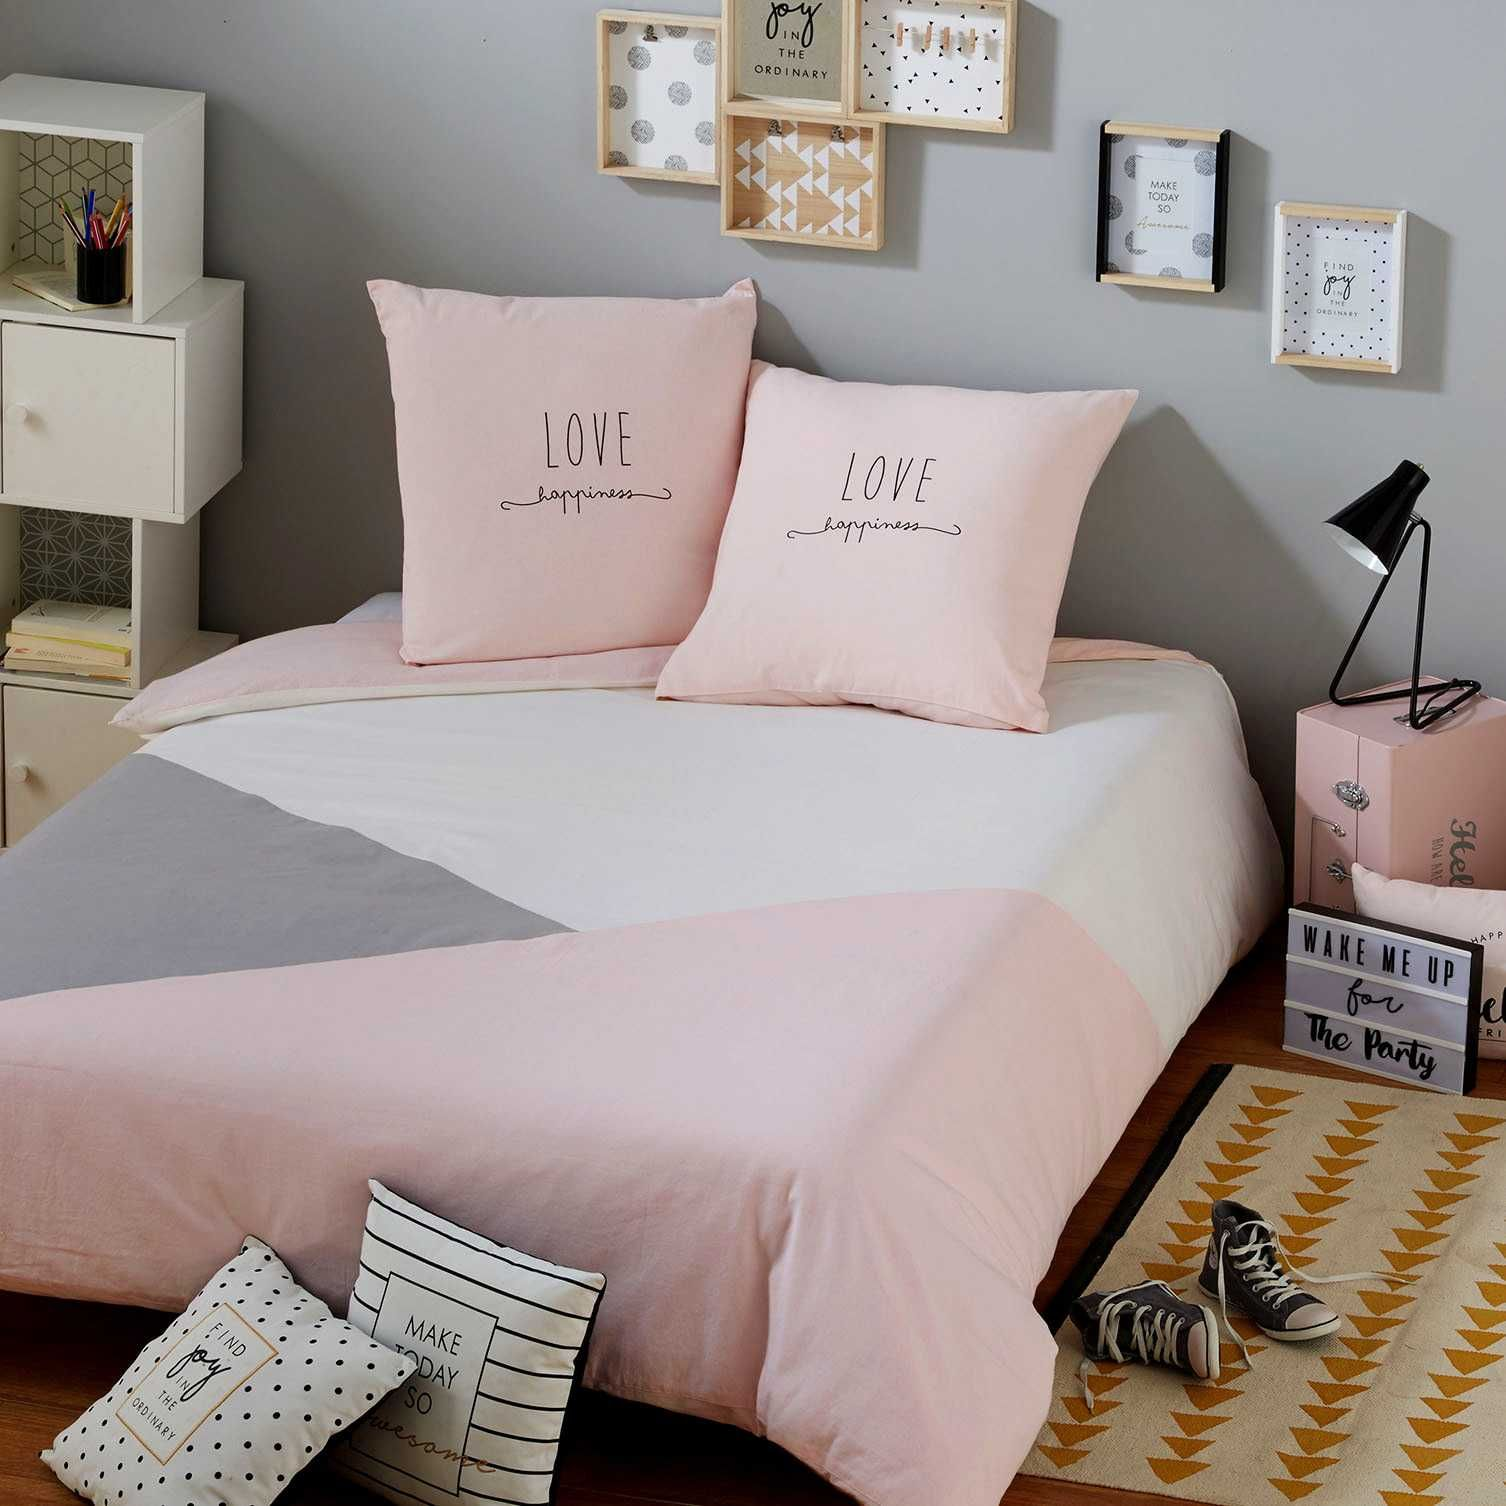 parure de lit en coton gris et rose 140x200 bedspread gray and cotton. Black Bedroom Furniture Sets. Home Design Ideas